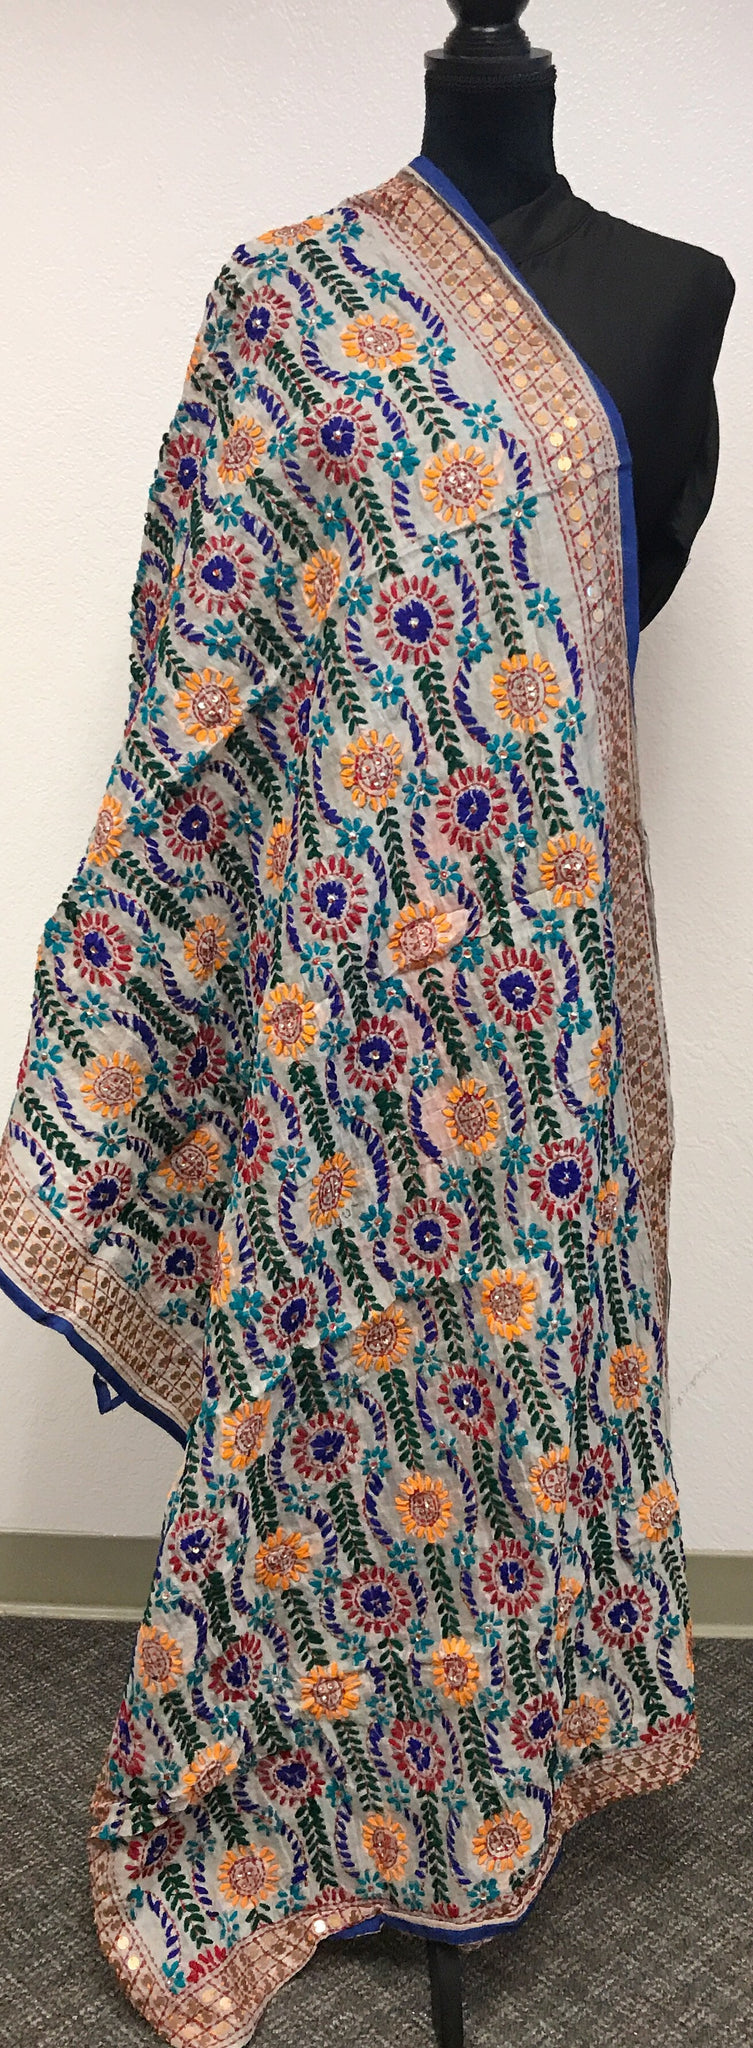 Embroidered dupatta #fdn627-131